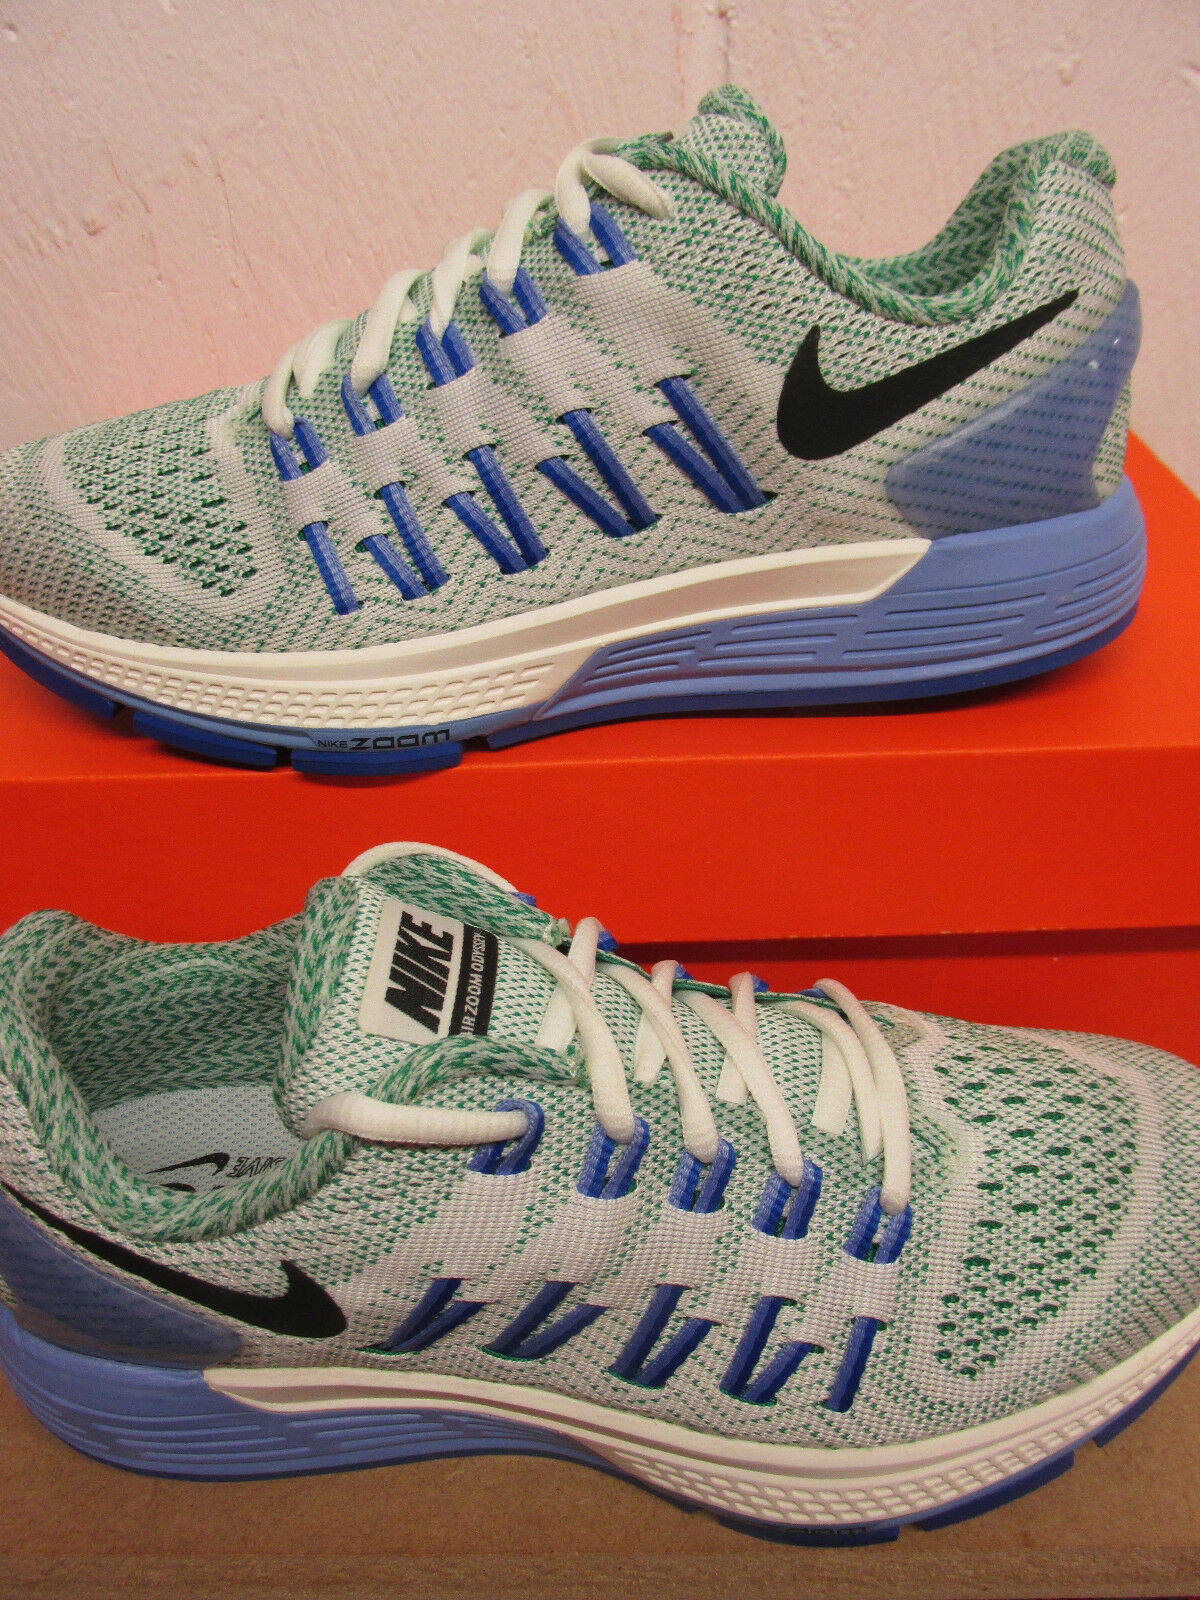 Nike Womens Air Zoom Odyssey Running Trainers 749339 101 Sneakers Shoes New shoes for men and women, limited time discount